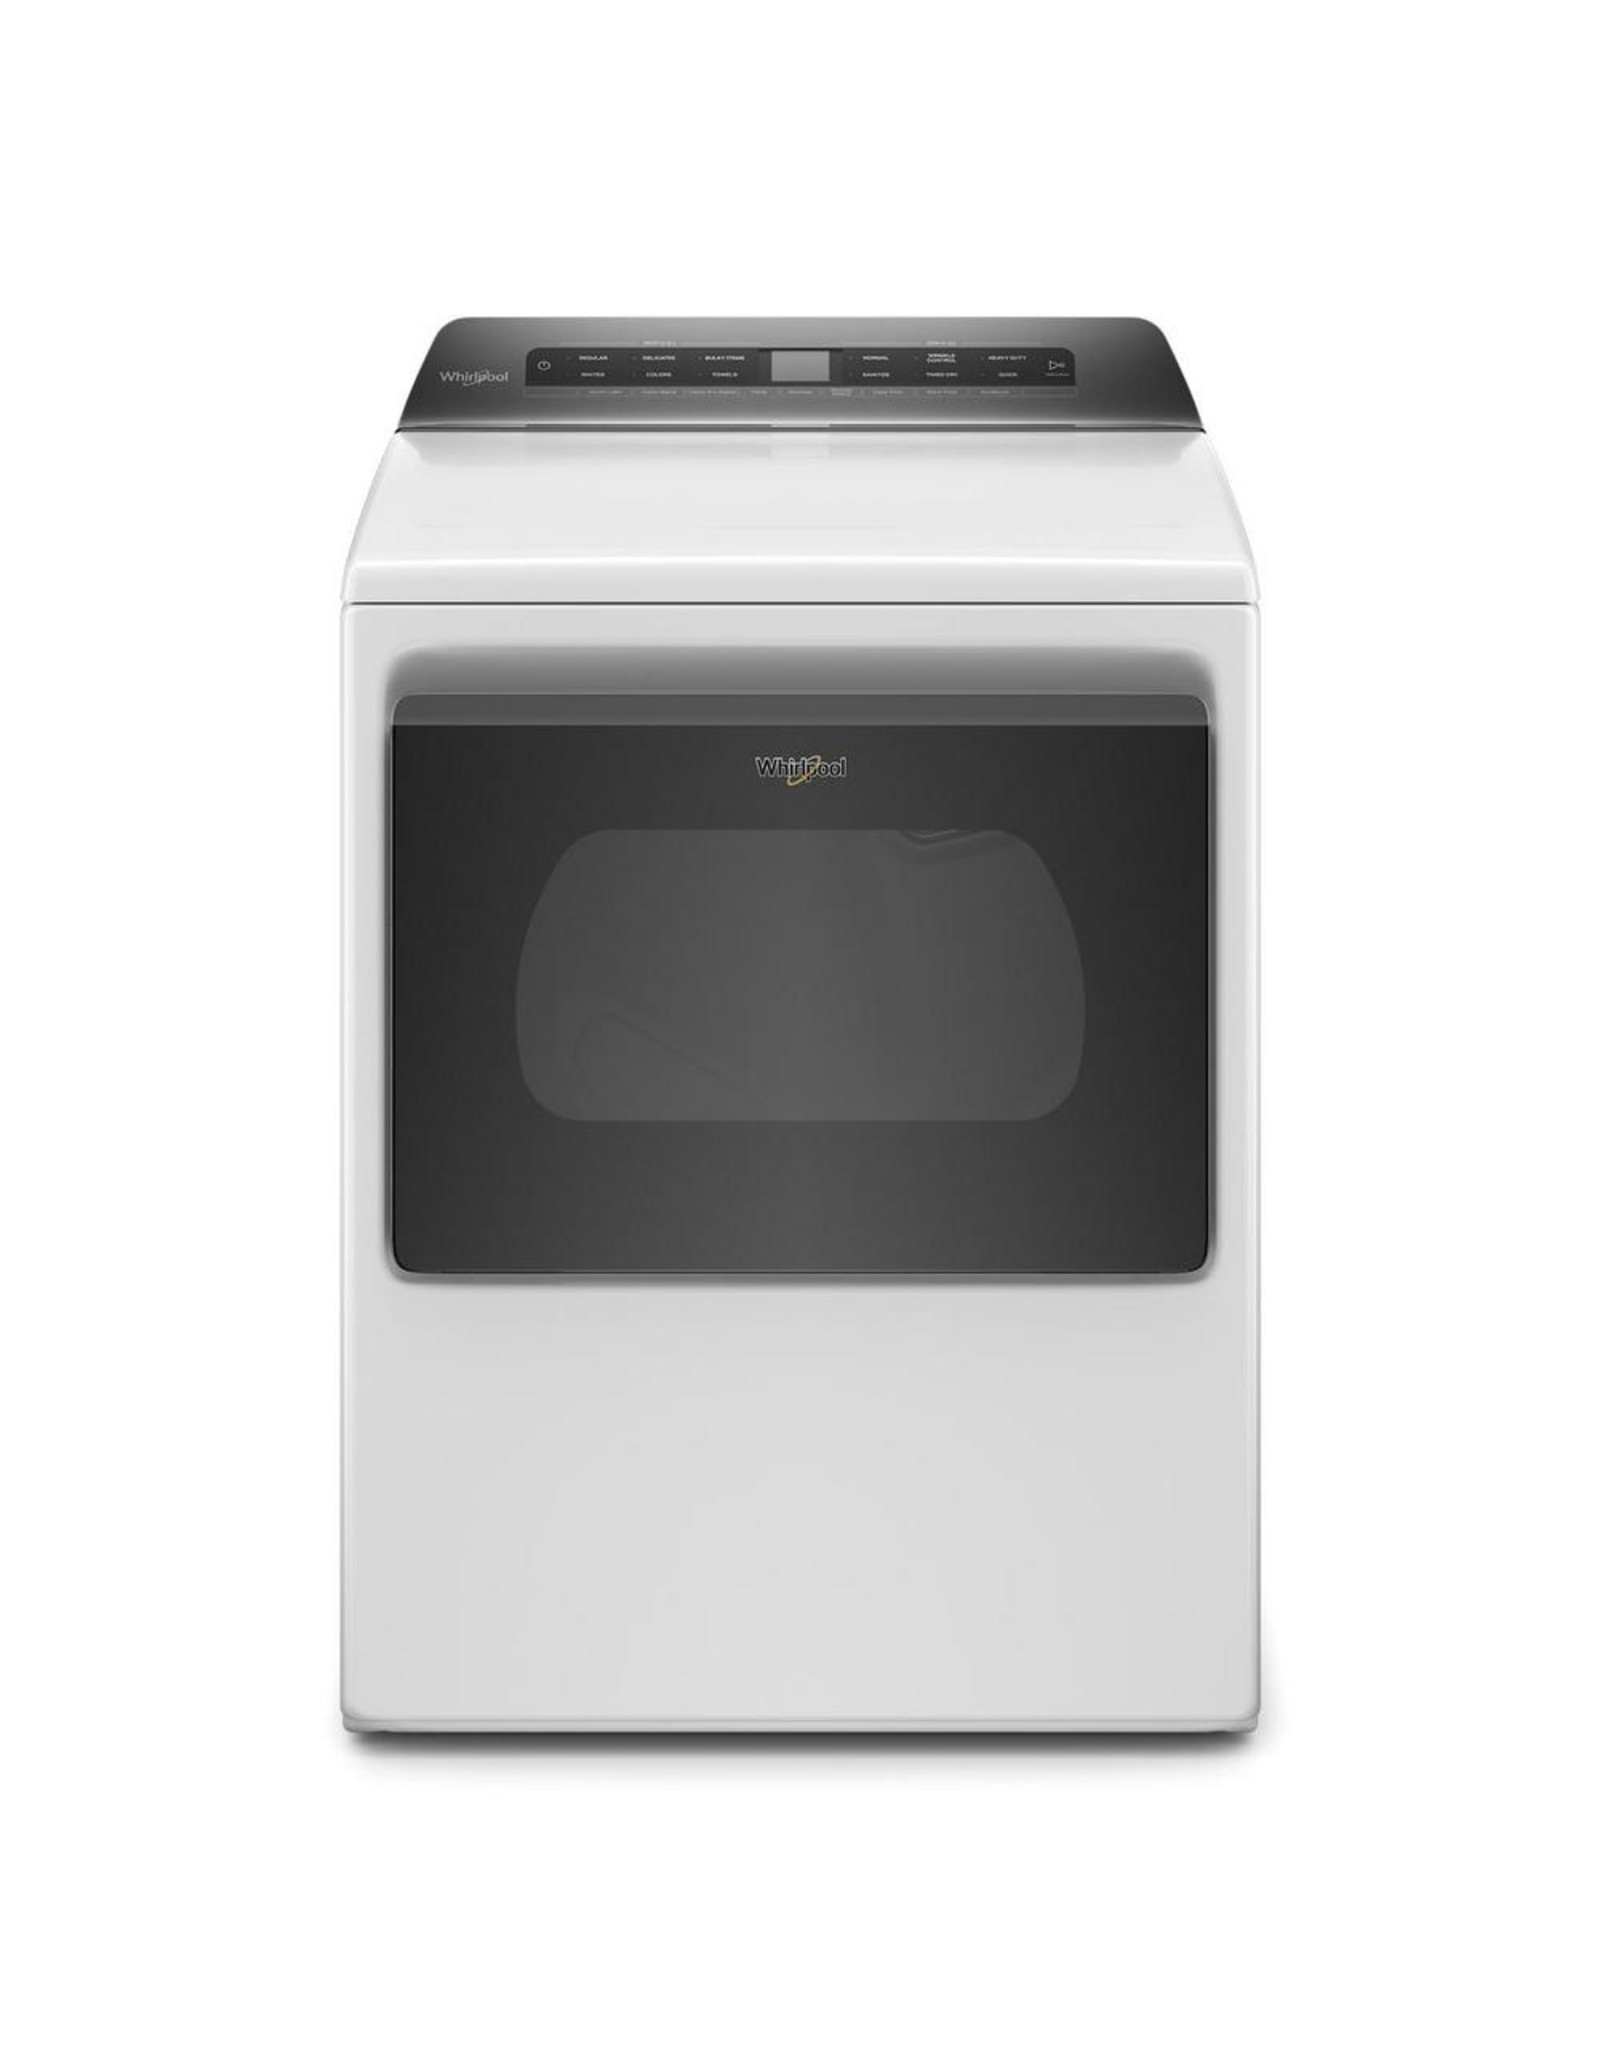 WHIRLPOOL WED5100HW Whirlpool 7.4 cu. ft. White Front Load Electric Dryer with AccuDry System